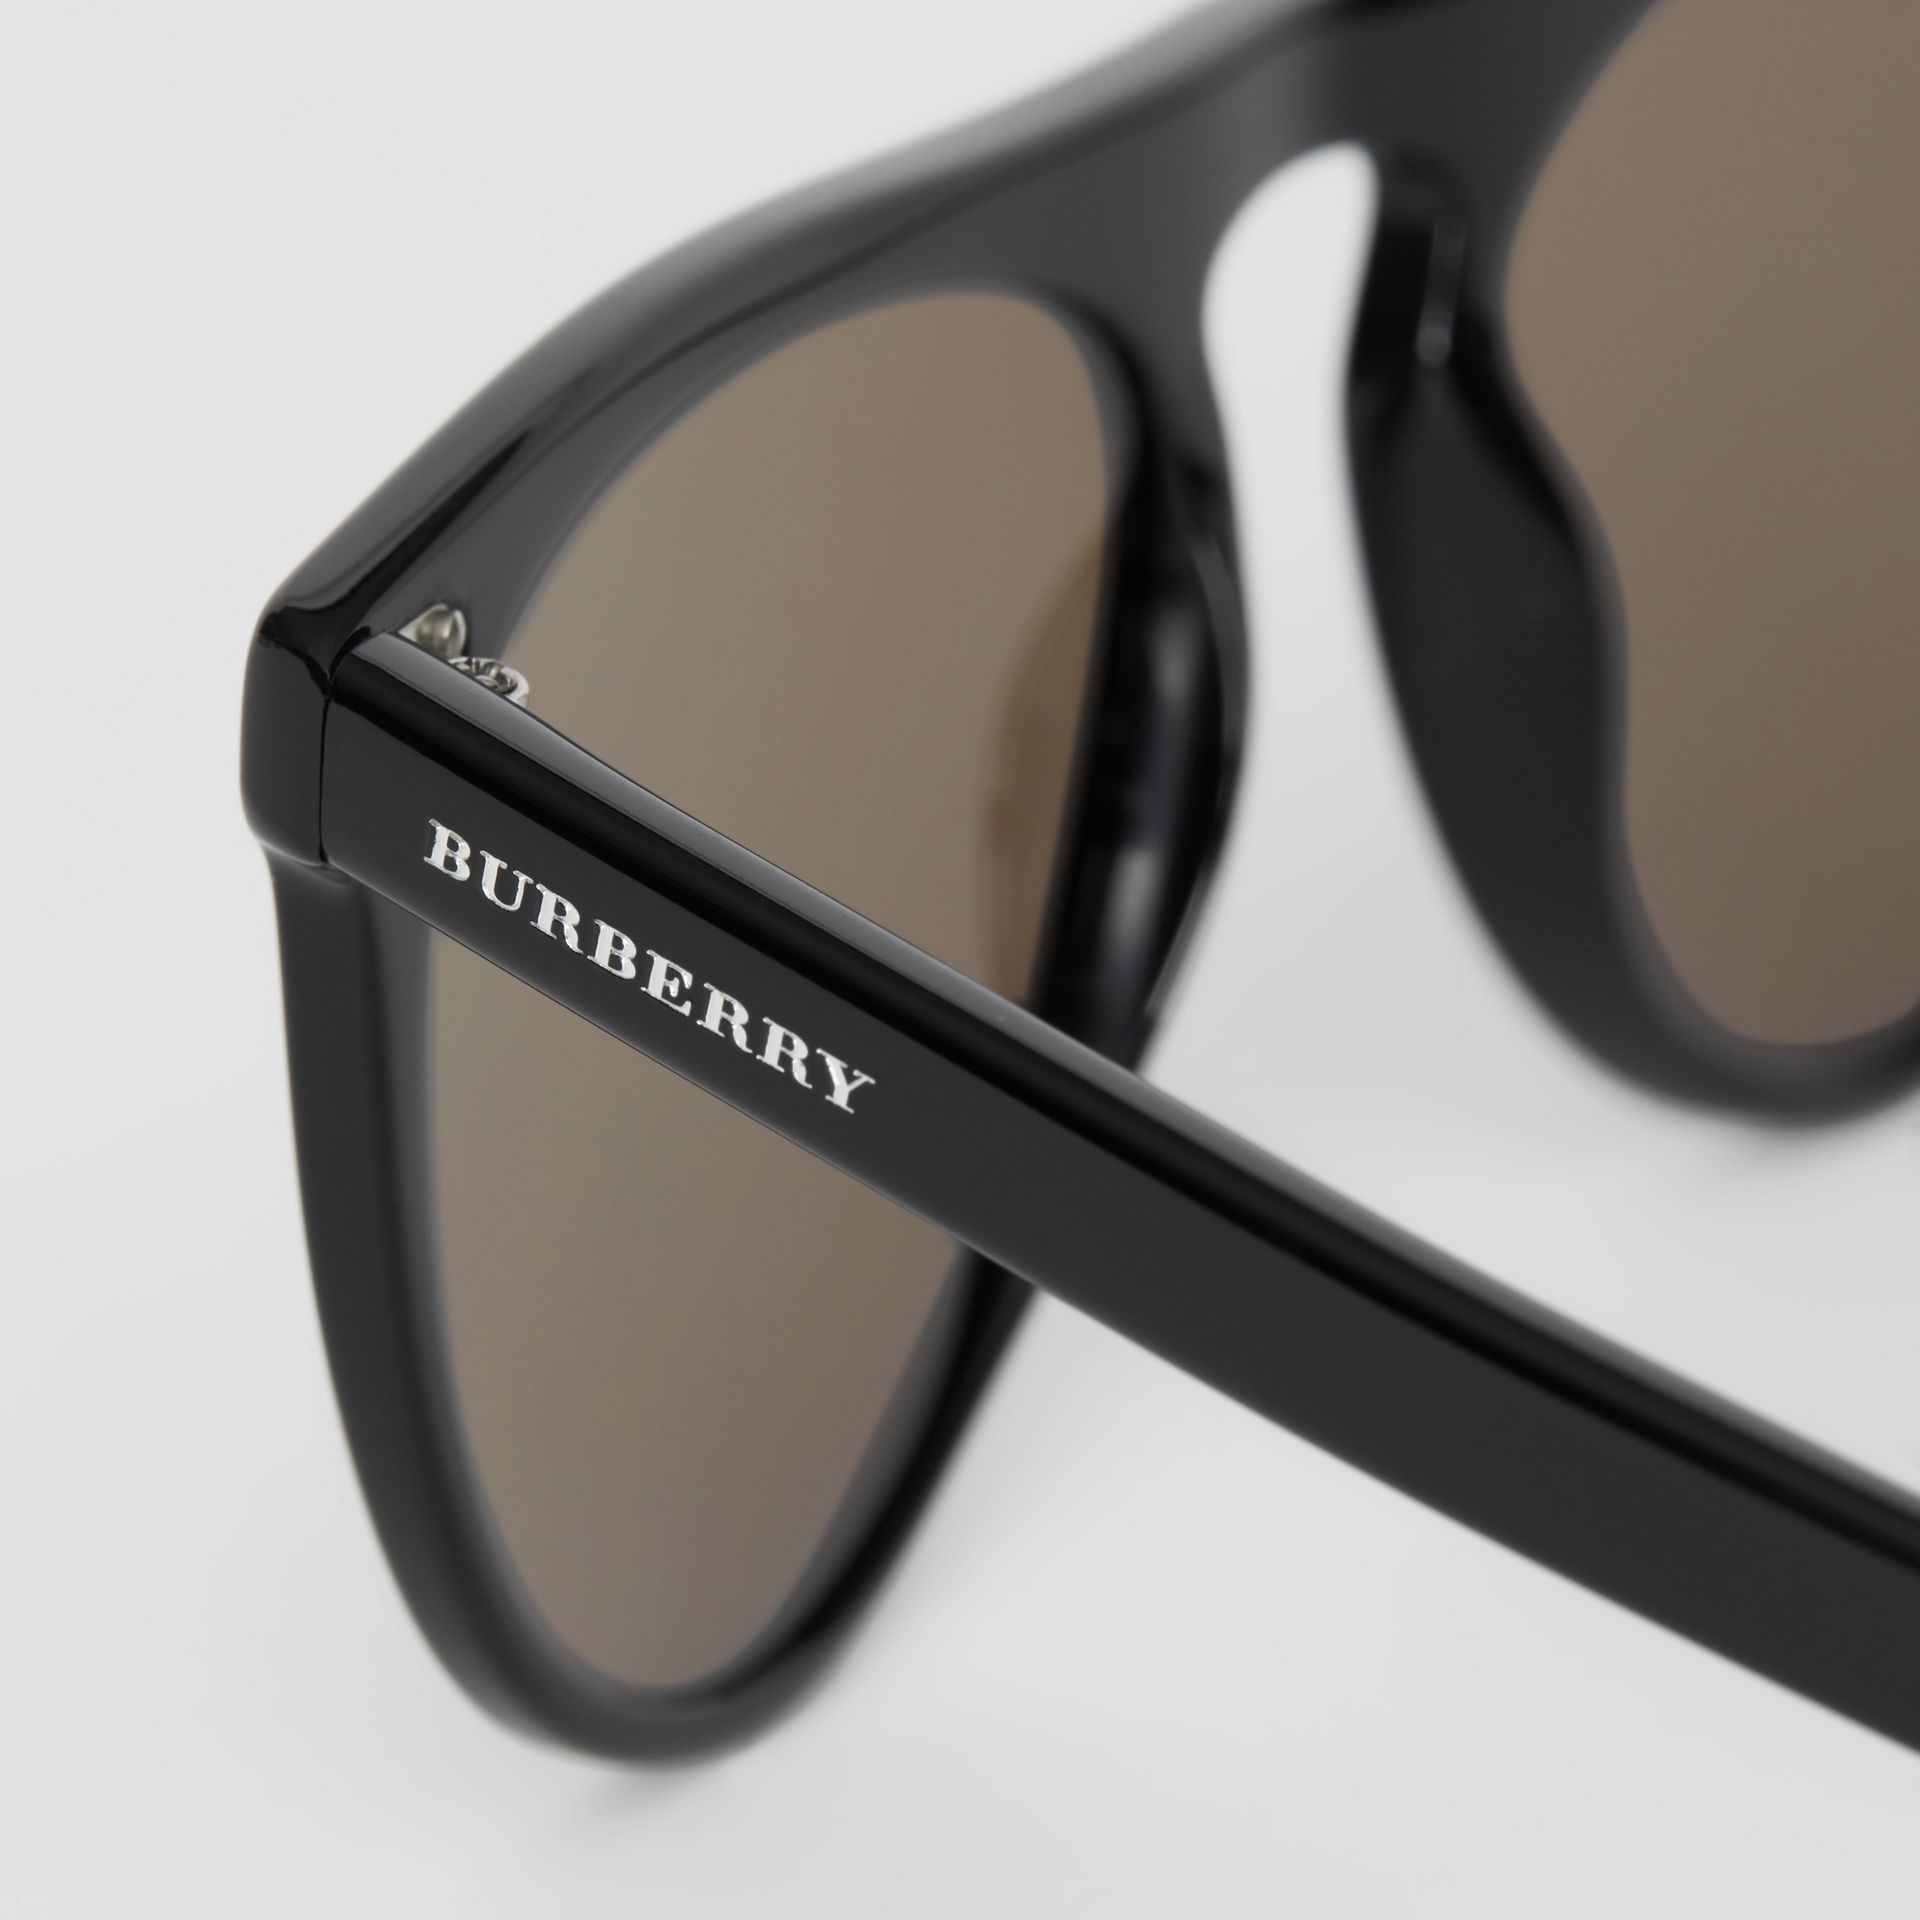 Keyhole D-shaped Sunglasses in Black - Men | Burberry - gallery image 1